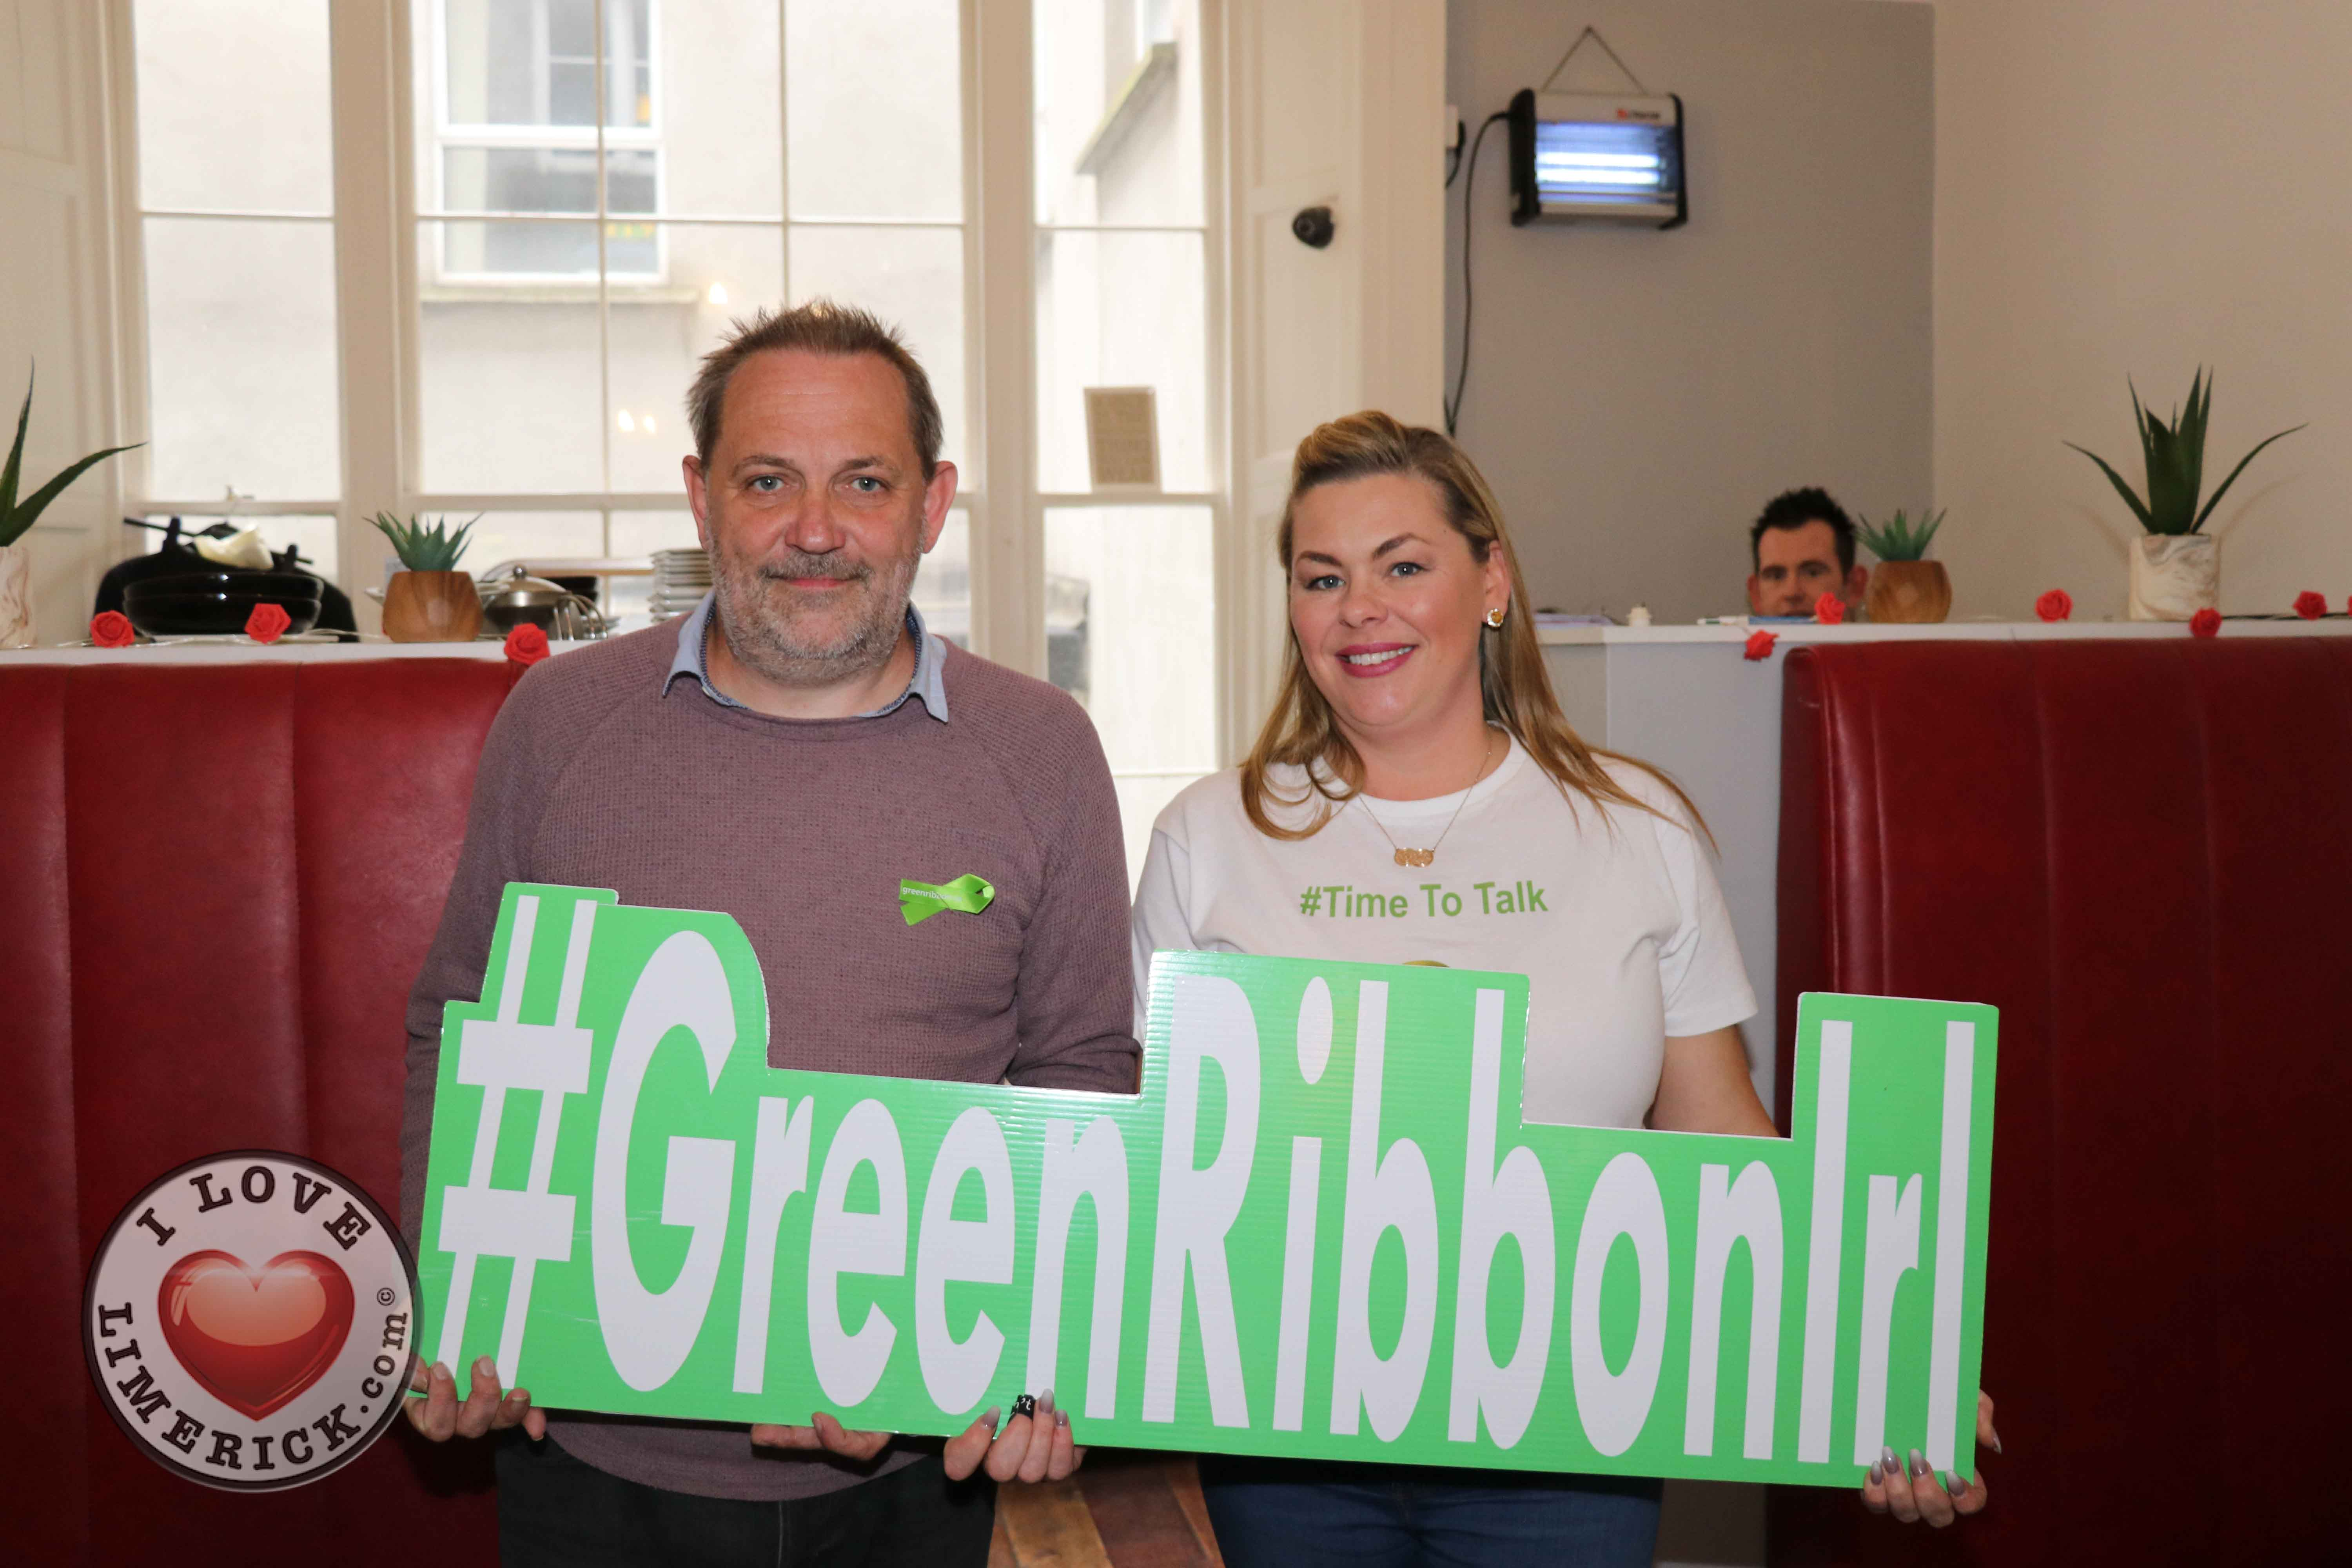 Pictured at the Ruby Sundays cafe for the EmployAbility Limerick's 'Time to Talk' day are life coach Patrick Merice, and Ursula Mackenzie, EmployAbility Limerick. Picture: Conor Owens/ilovelimerick.